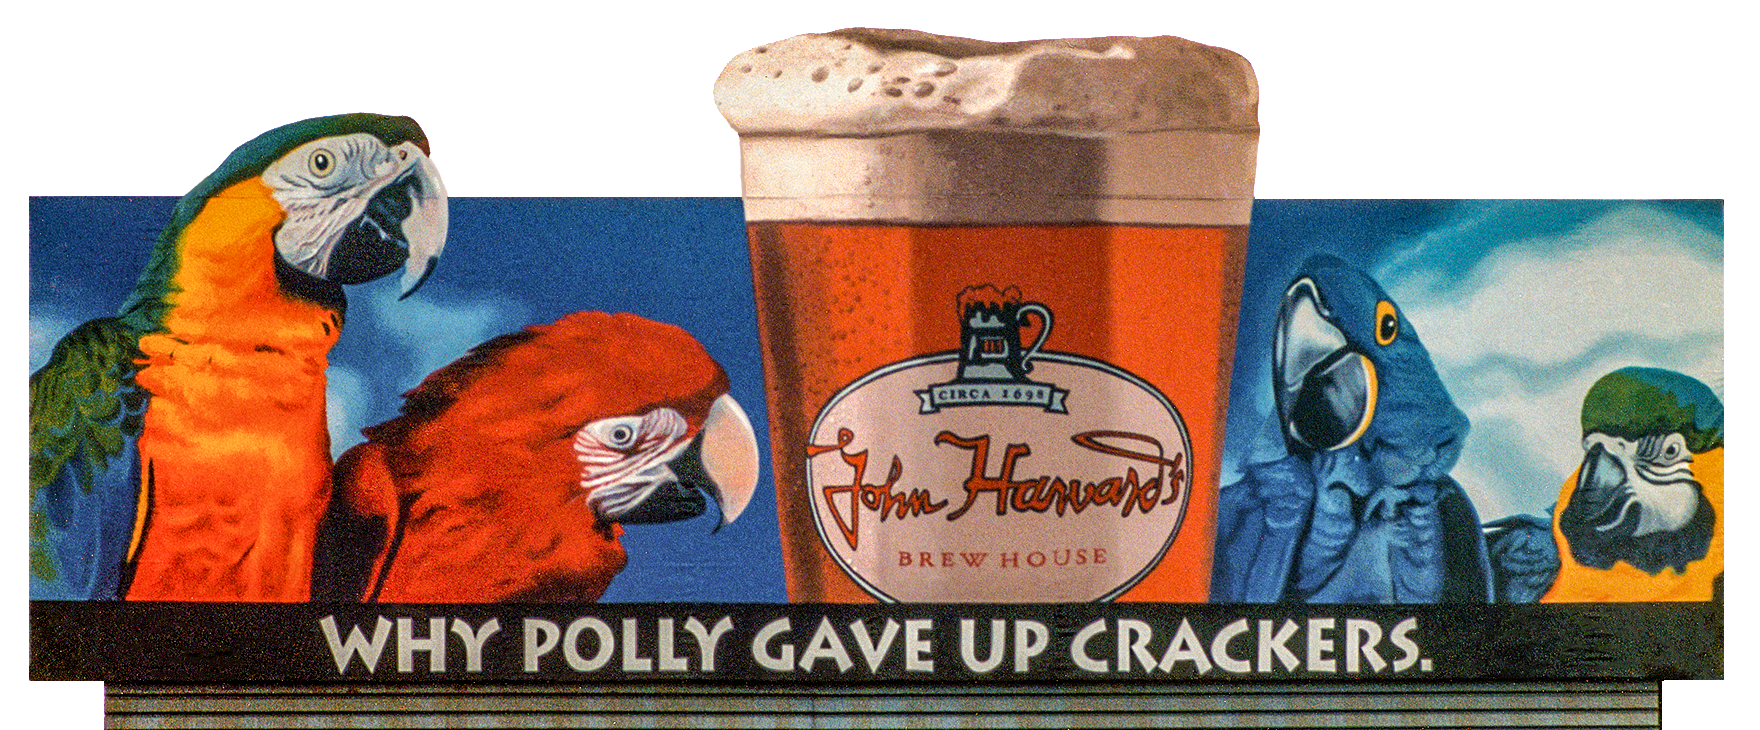 """Outdoor Advertising- """"Why Polly Gave Up Crackers"""" • John Harvard's brew house. Hand painted this 14' by 48' billboard."""